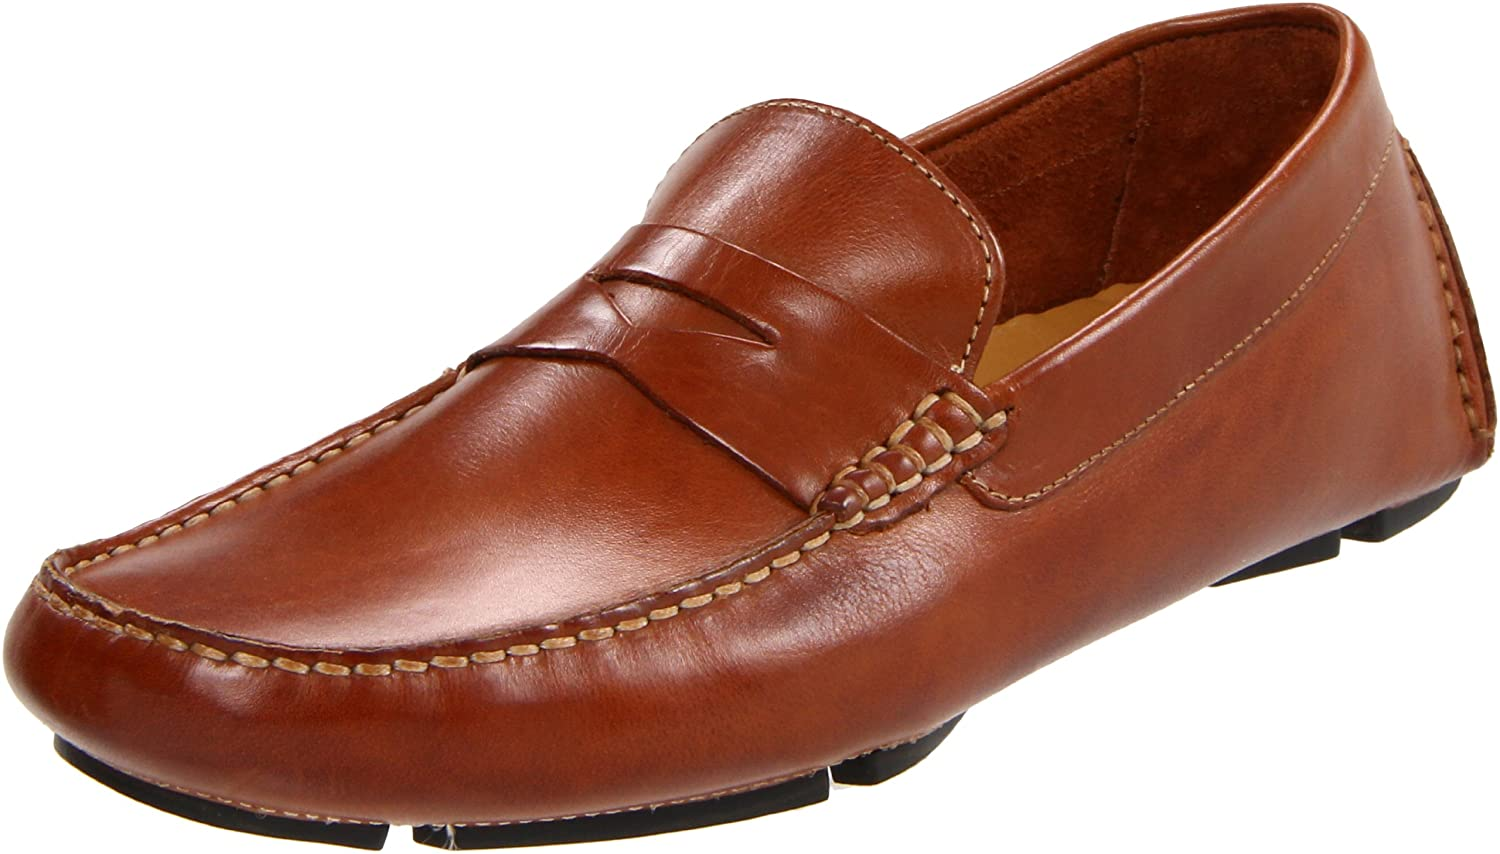 a7ecb11a8d Cole Haan Men's Howland Penny Loafer | eBay